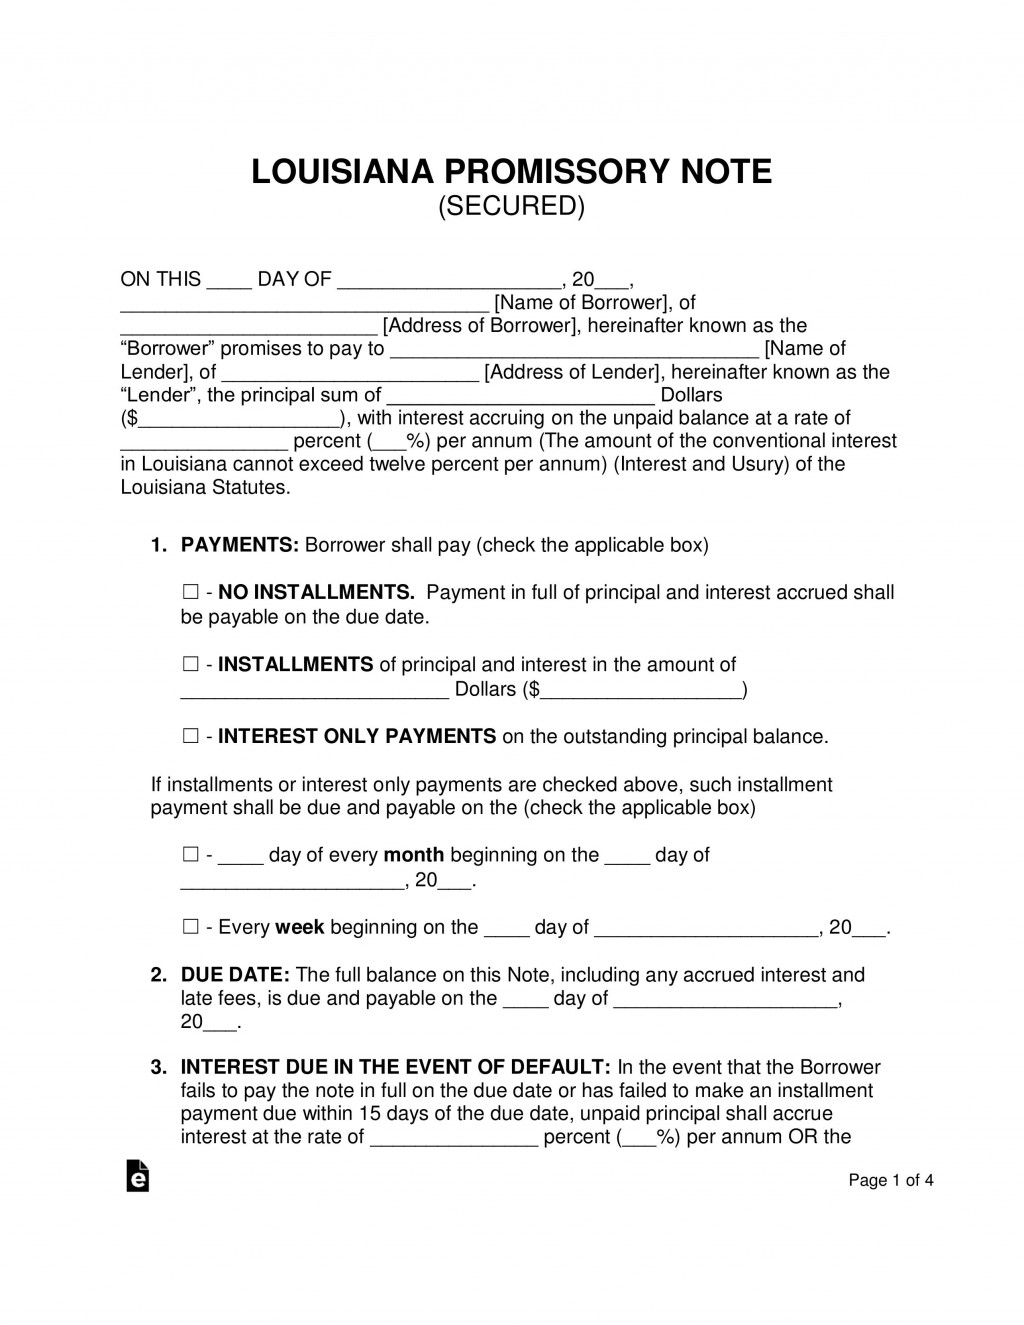 002 Wonderful Loan Promissory Note Template High Resolution  Family Busines Format For HandLarge